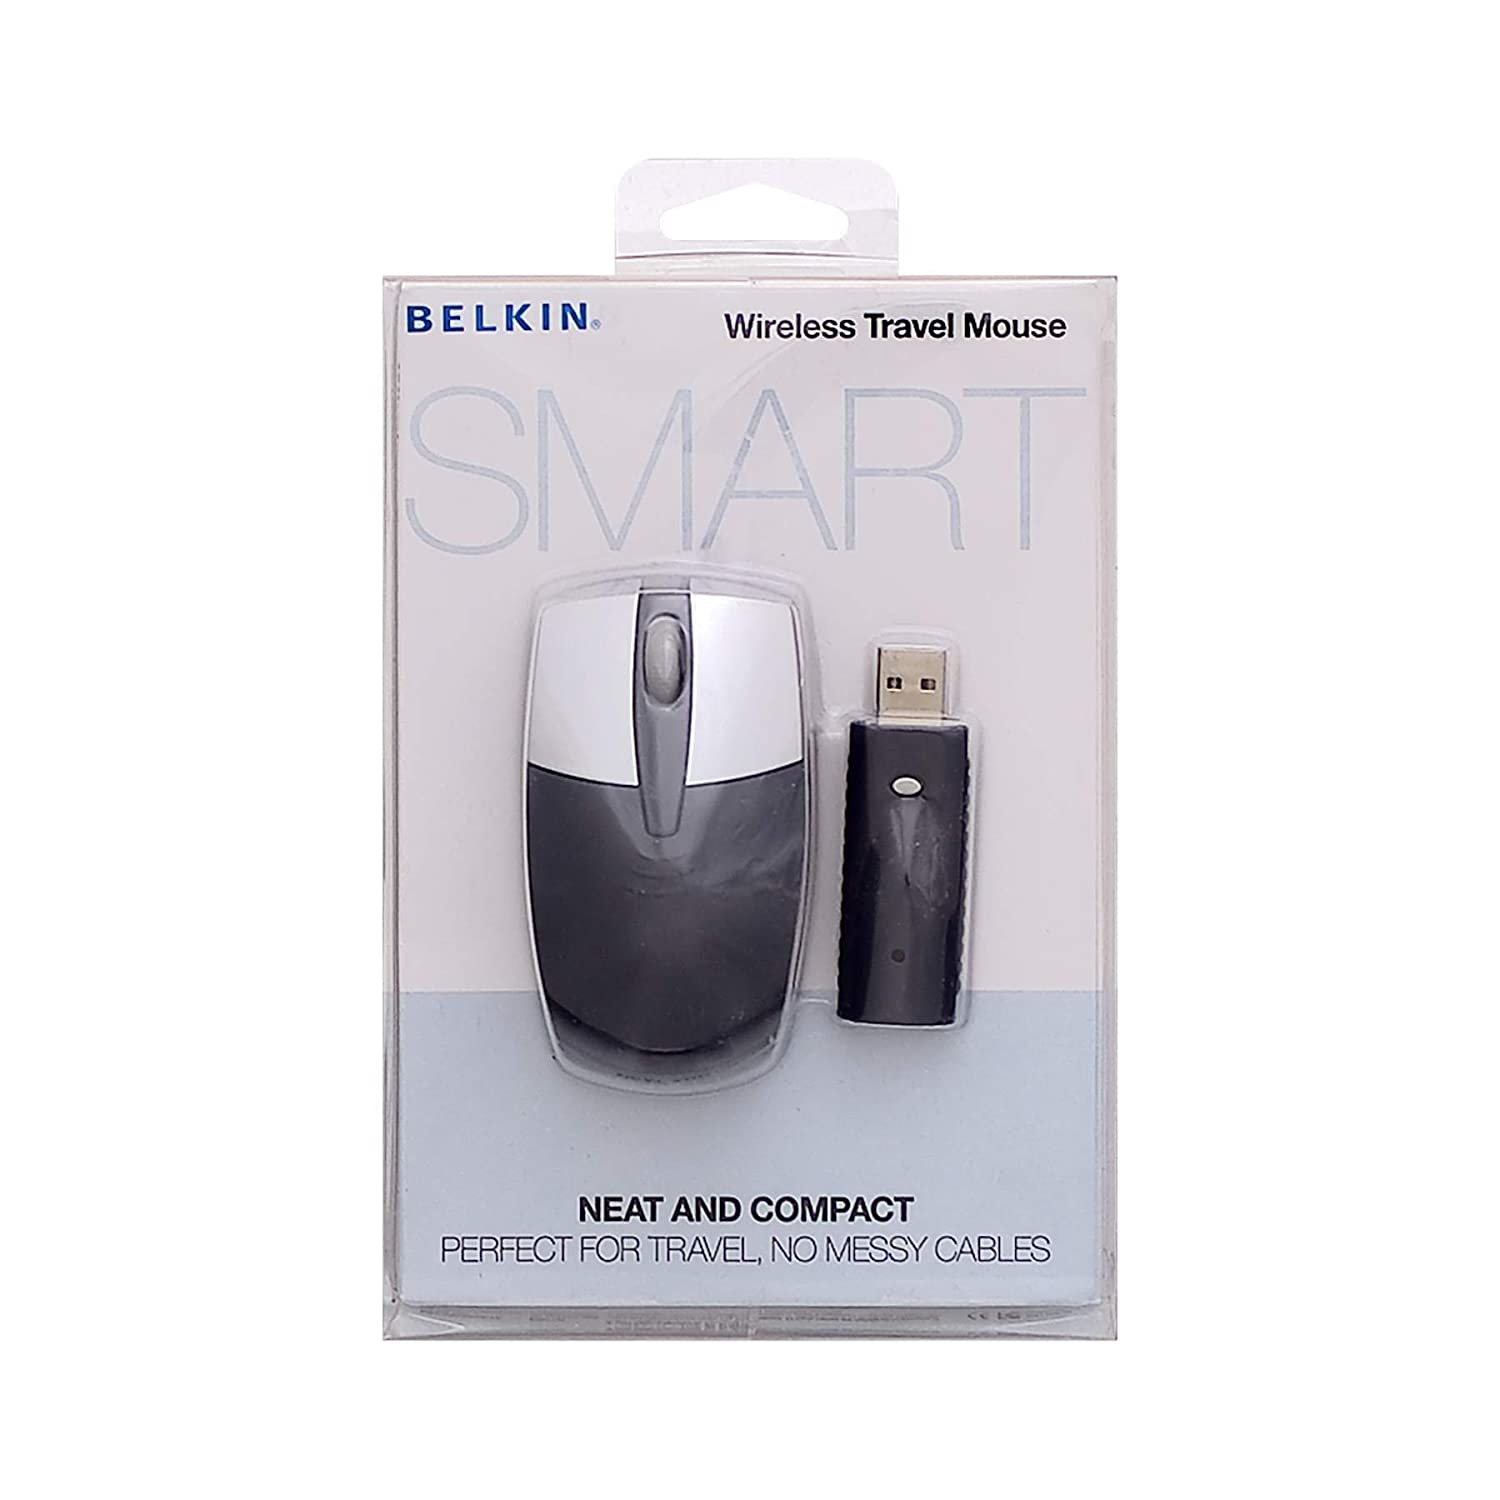 BELKIN F5L017-USB WIRELESS TRAVEL MOUSE DRIVER FOR WINDOWS